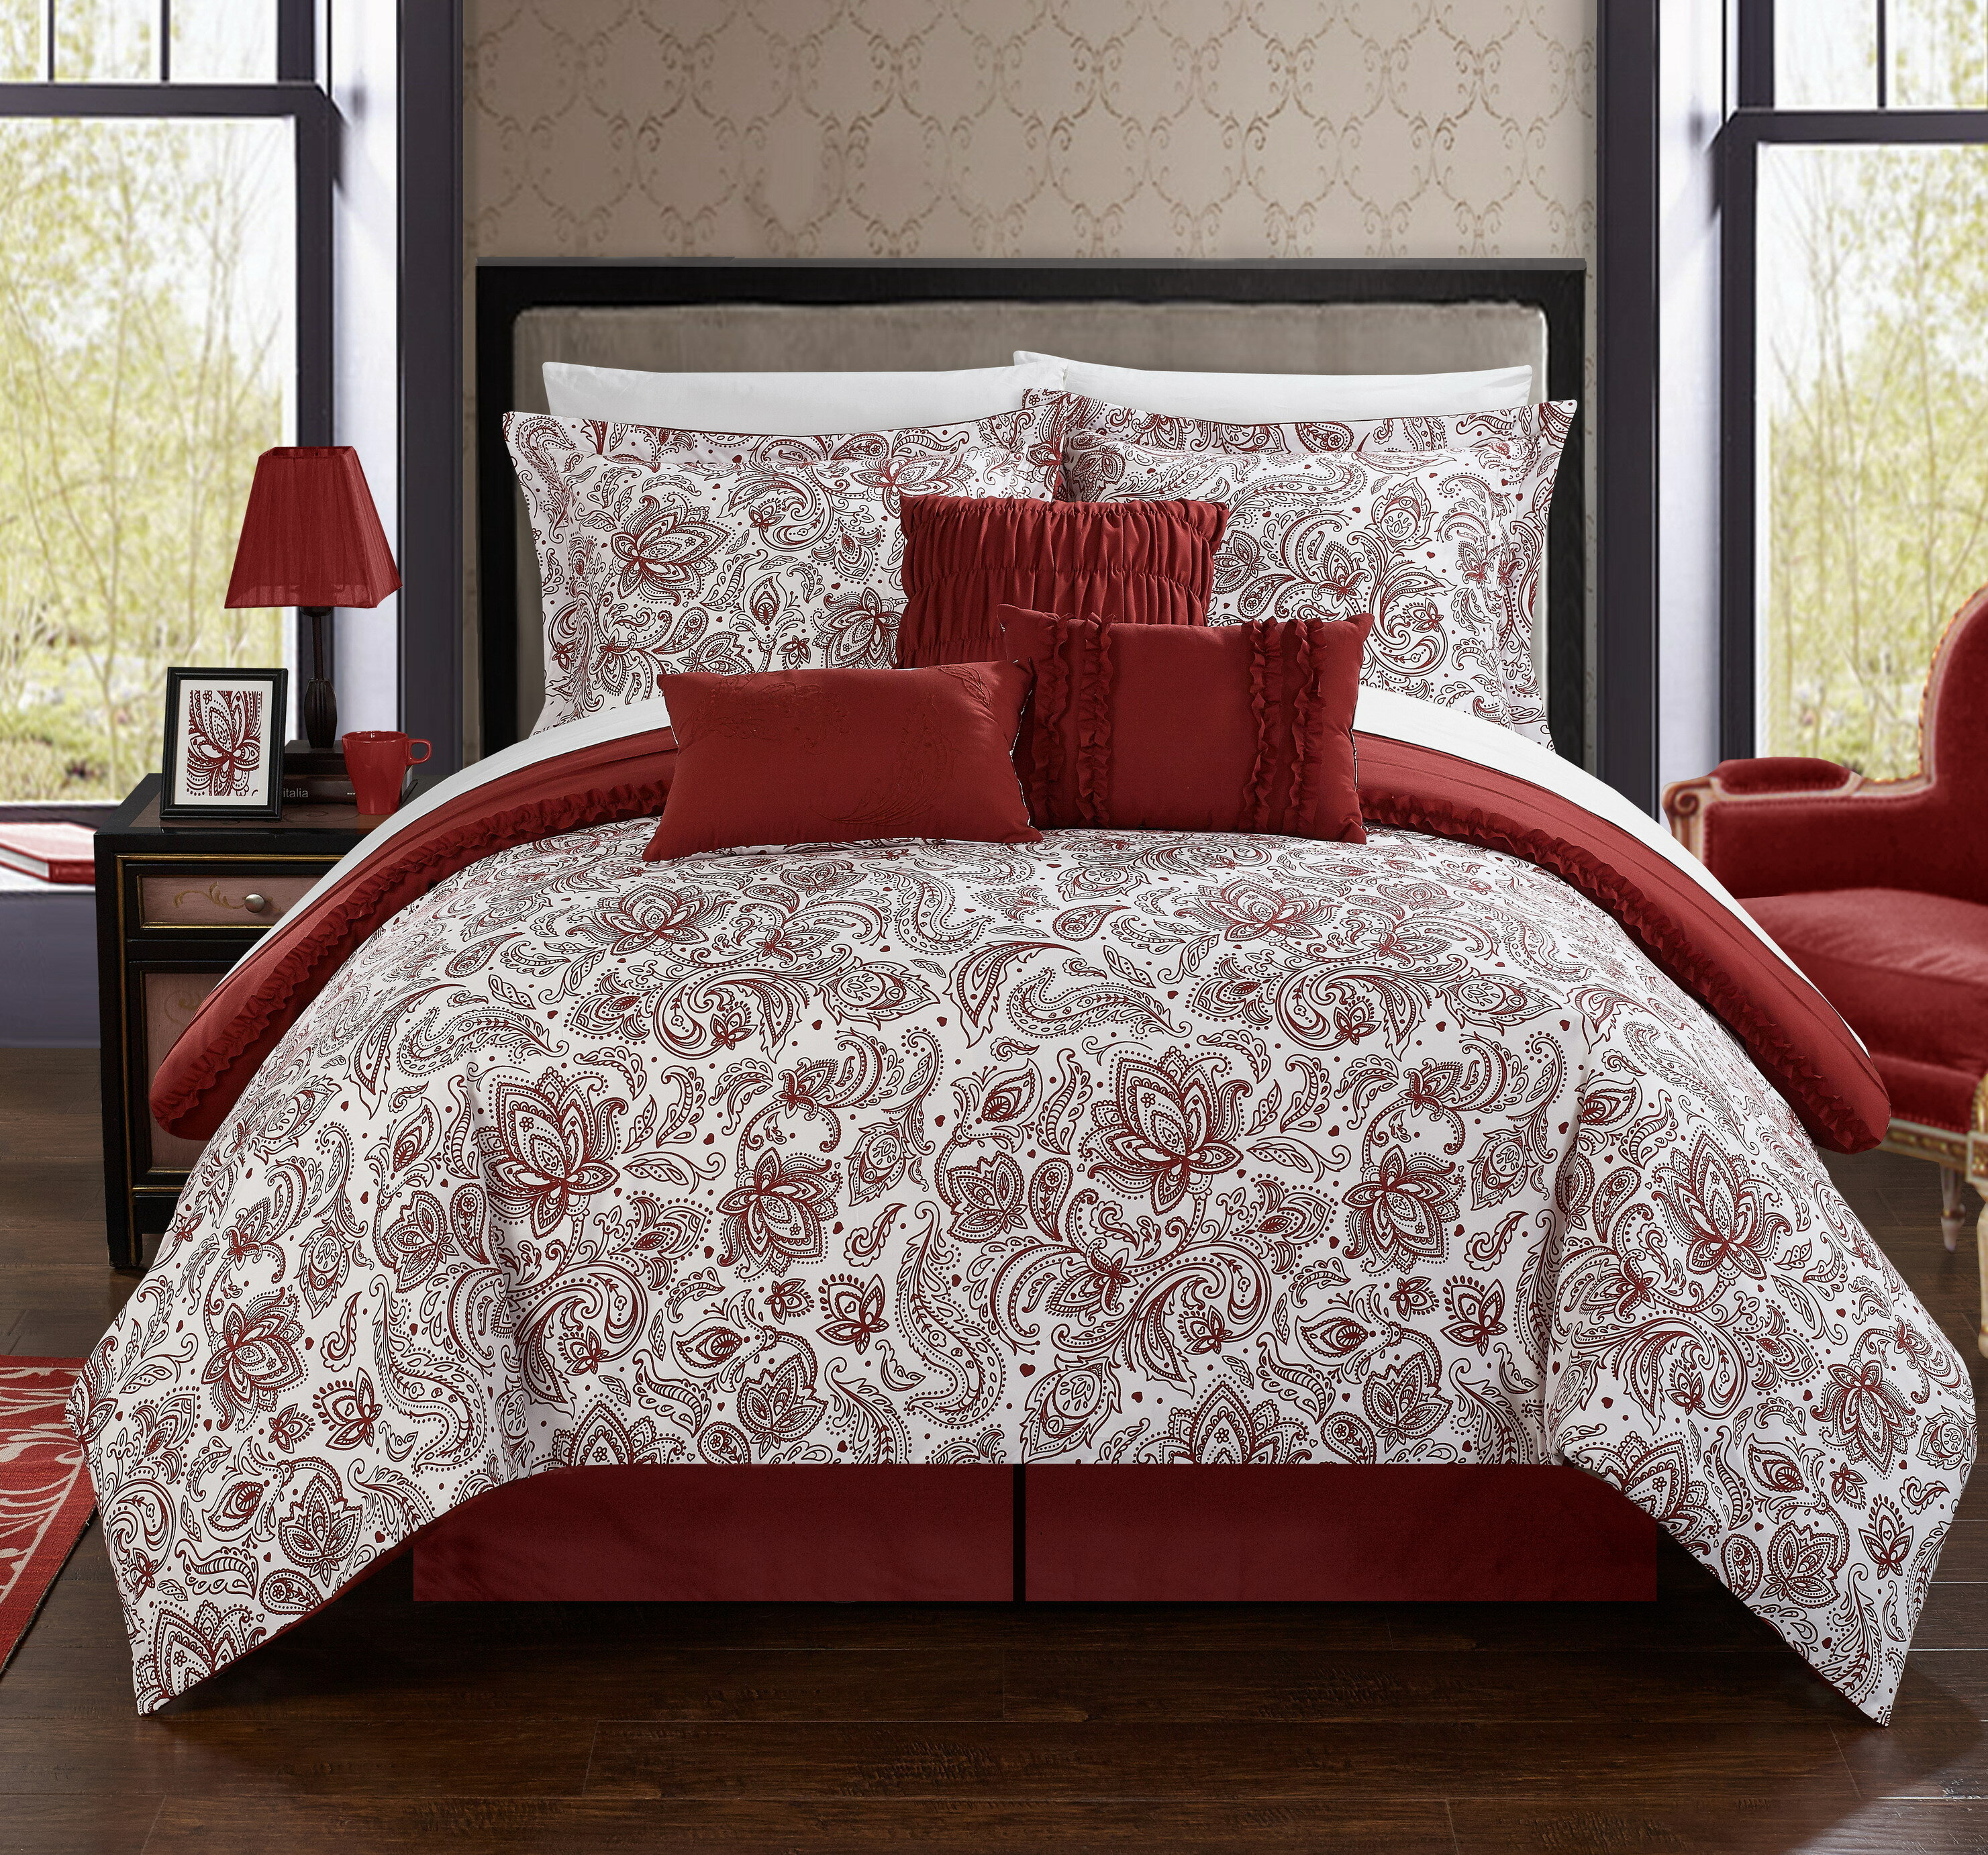 over bring ashley laura burgundy in sets free set purple on red shipping comforter orders pin ella